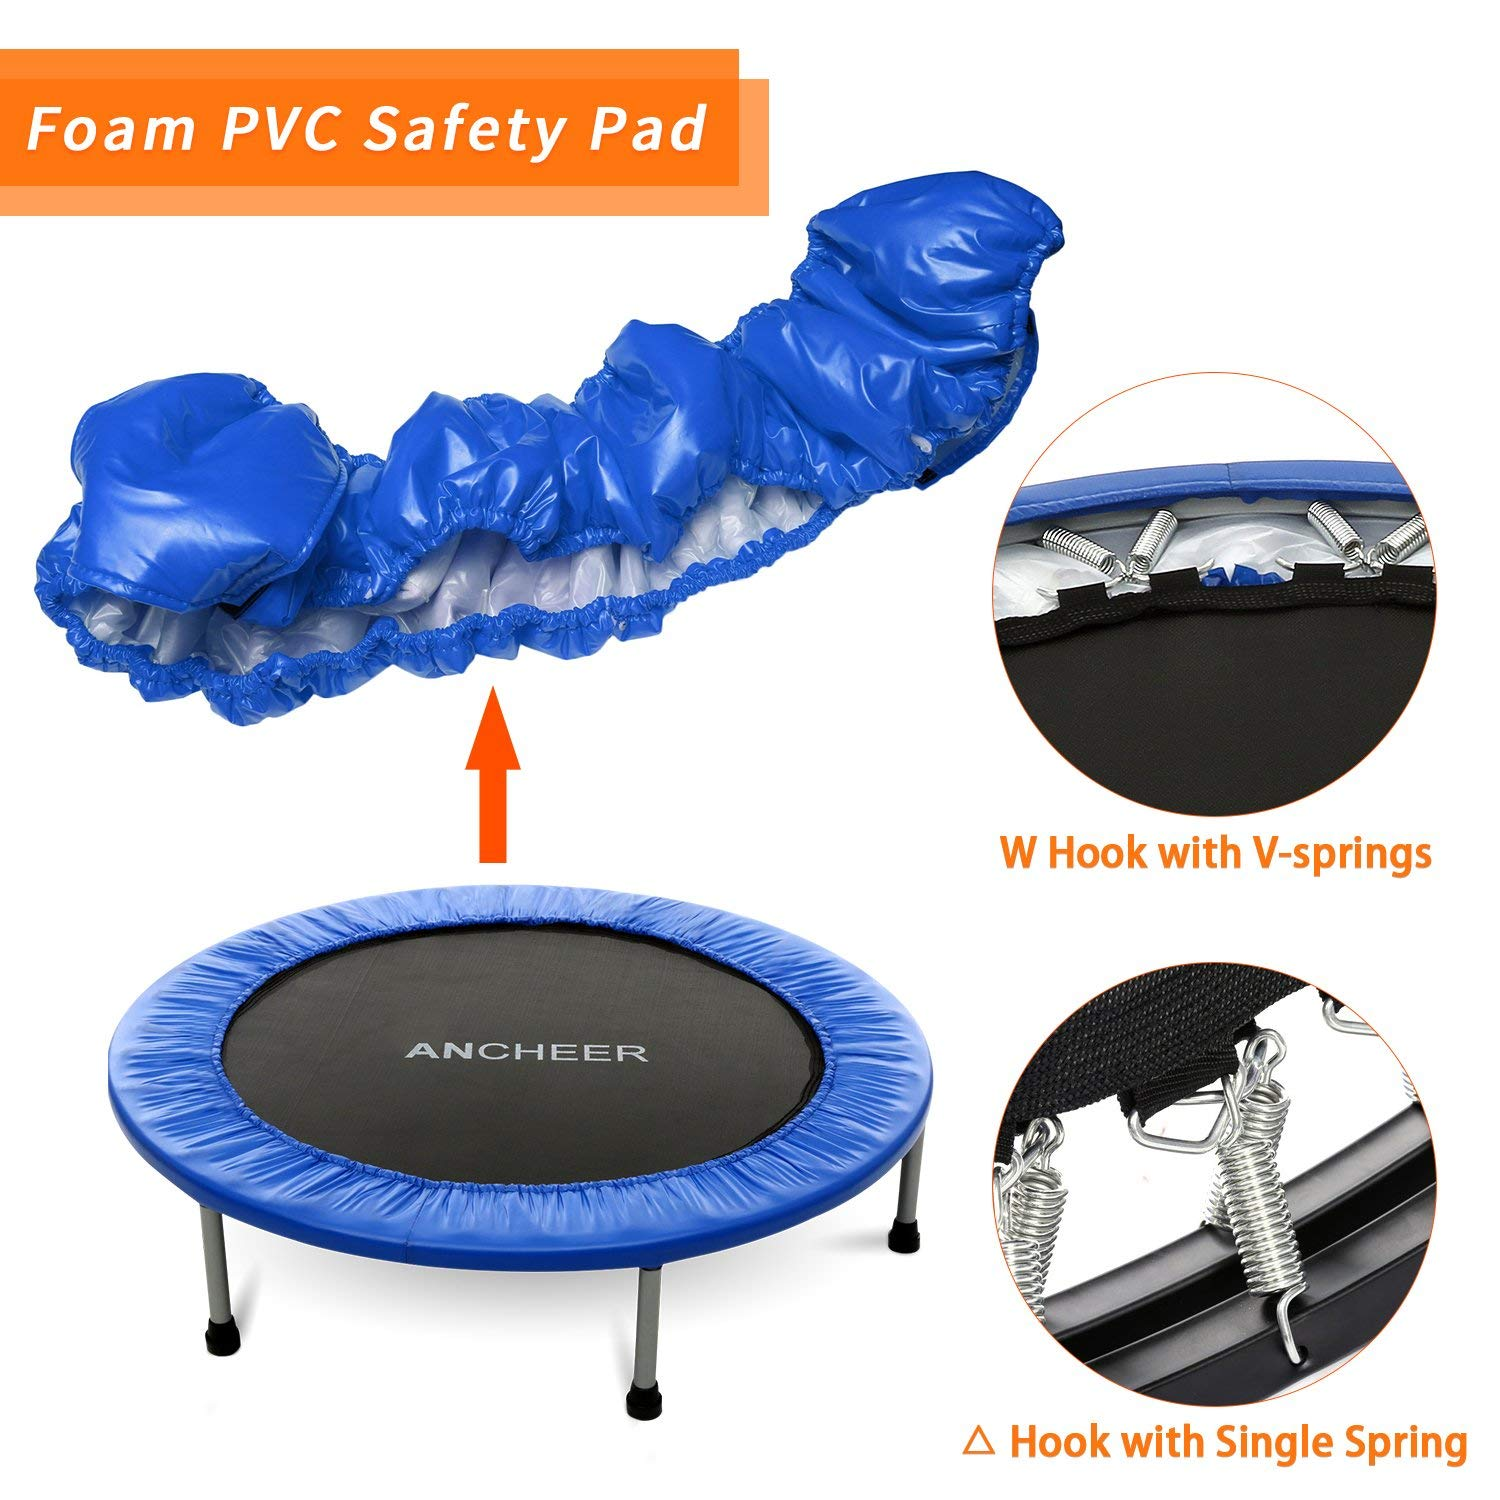 ANCHEER Max Load 220lbs Rebounder Trampoline with Safety Pad for Indoor Garden Workout Cardio Training (2 Sizes: 38 inch/40 inch, Two Modes: Folding/Not Folding) (Renewed) by ANCHEER (Image #2)